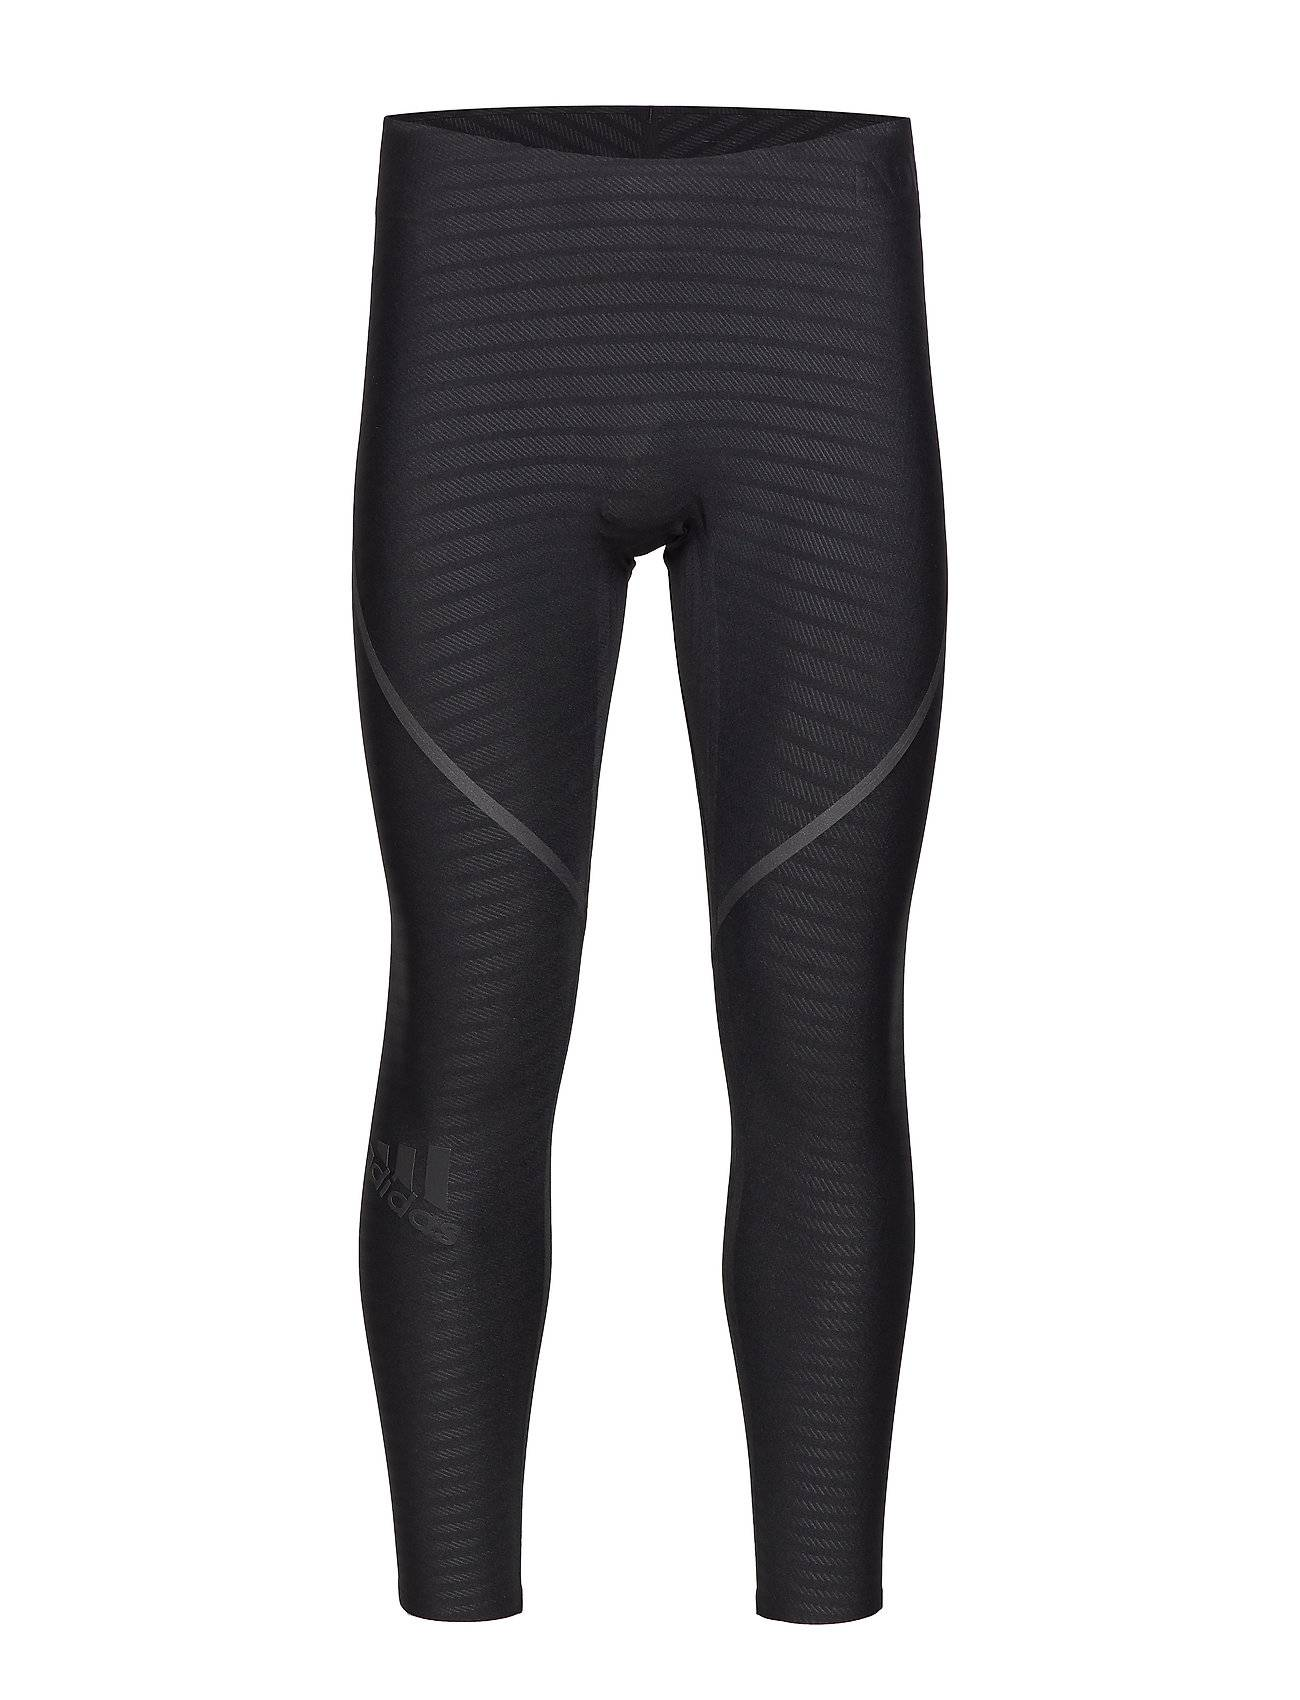 Image of adidas Performance Ask 360 Tig Lt Running/training Tights Musta Adidas Performance